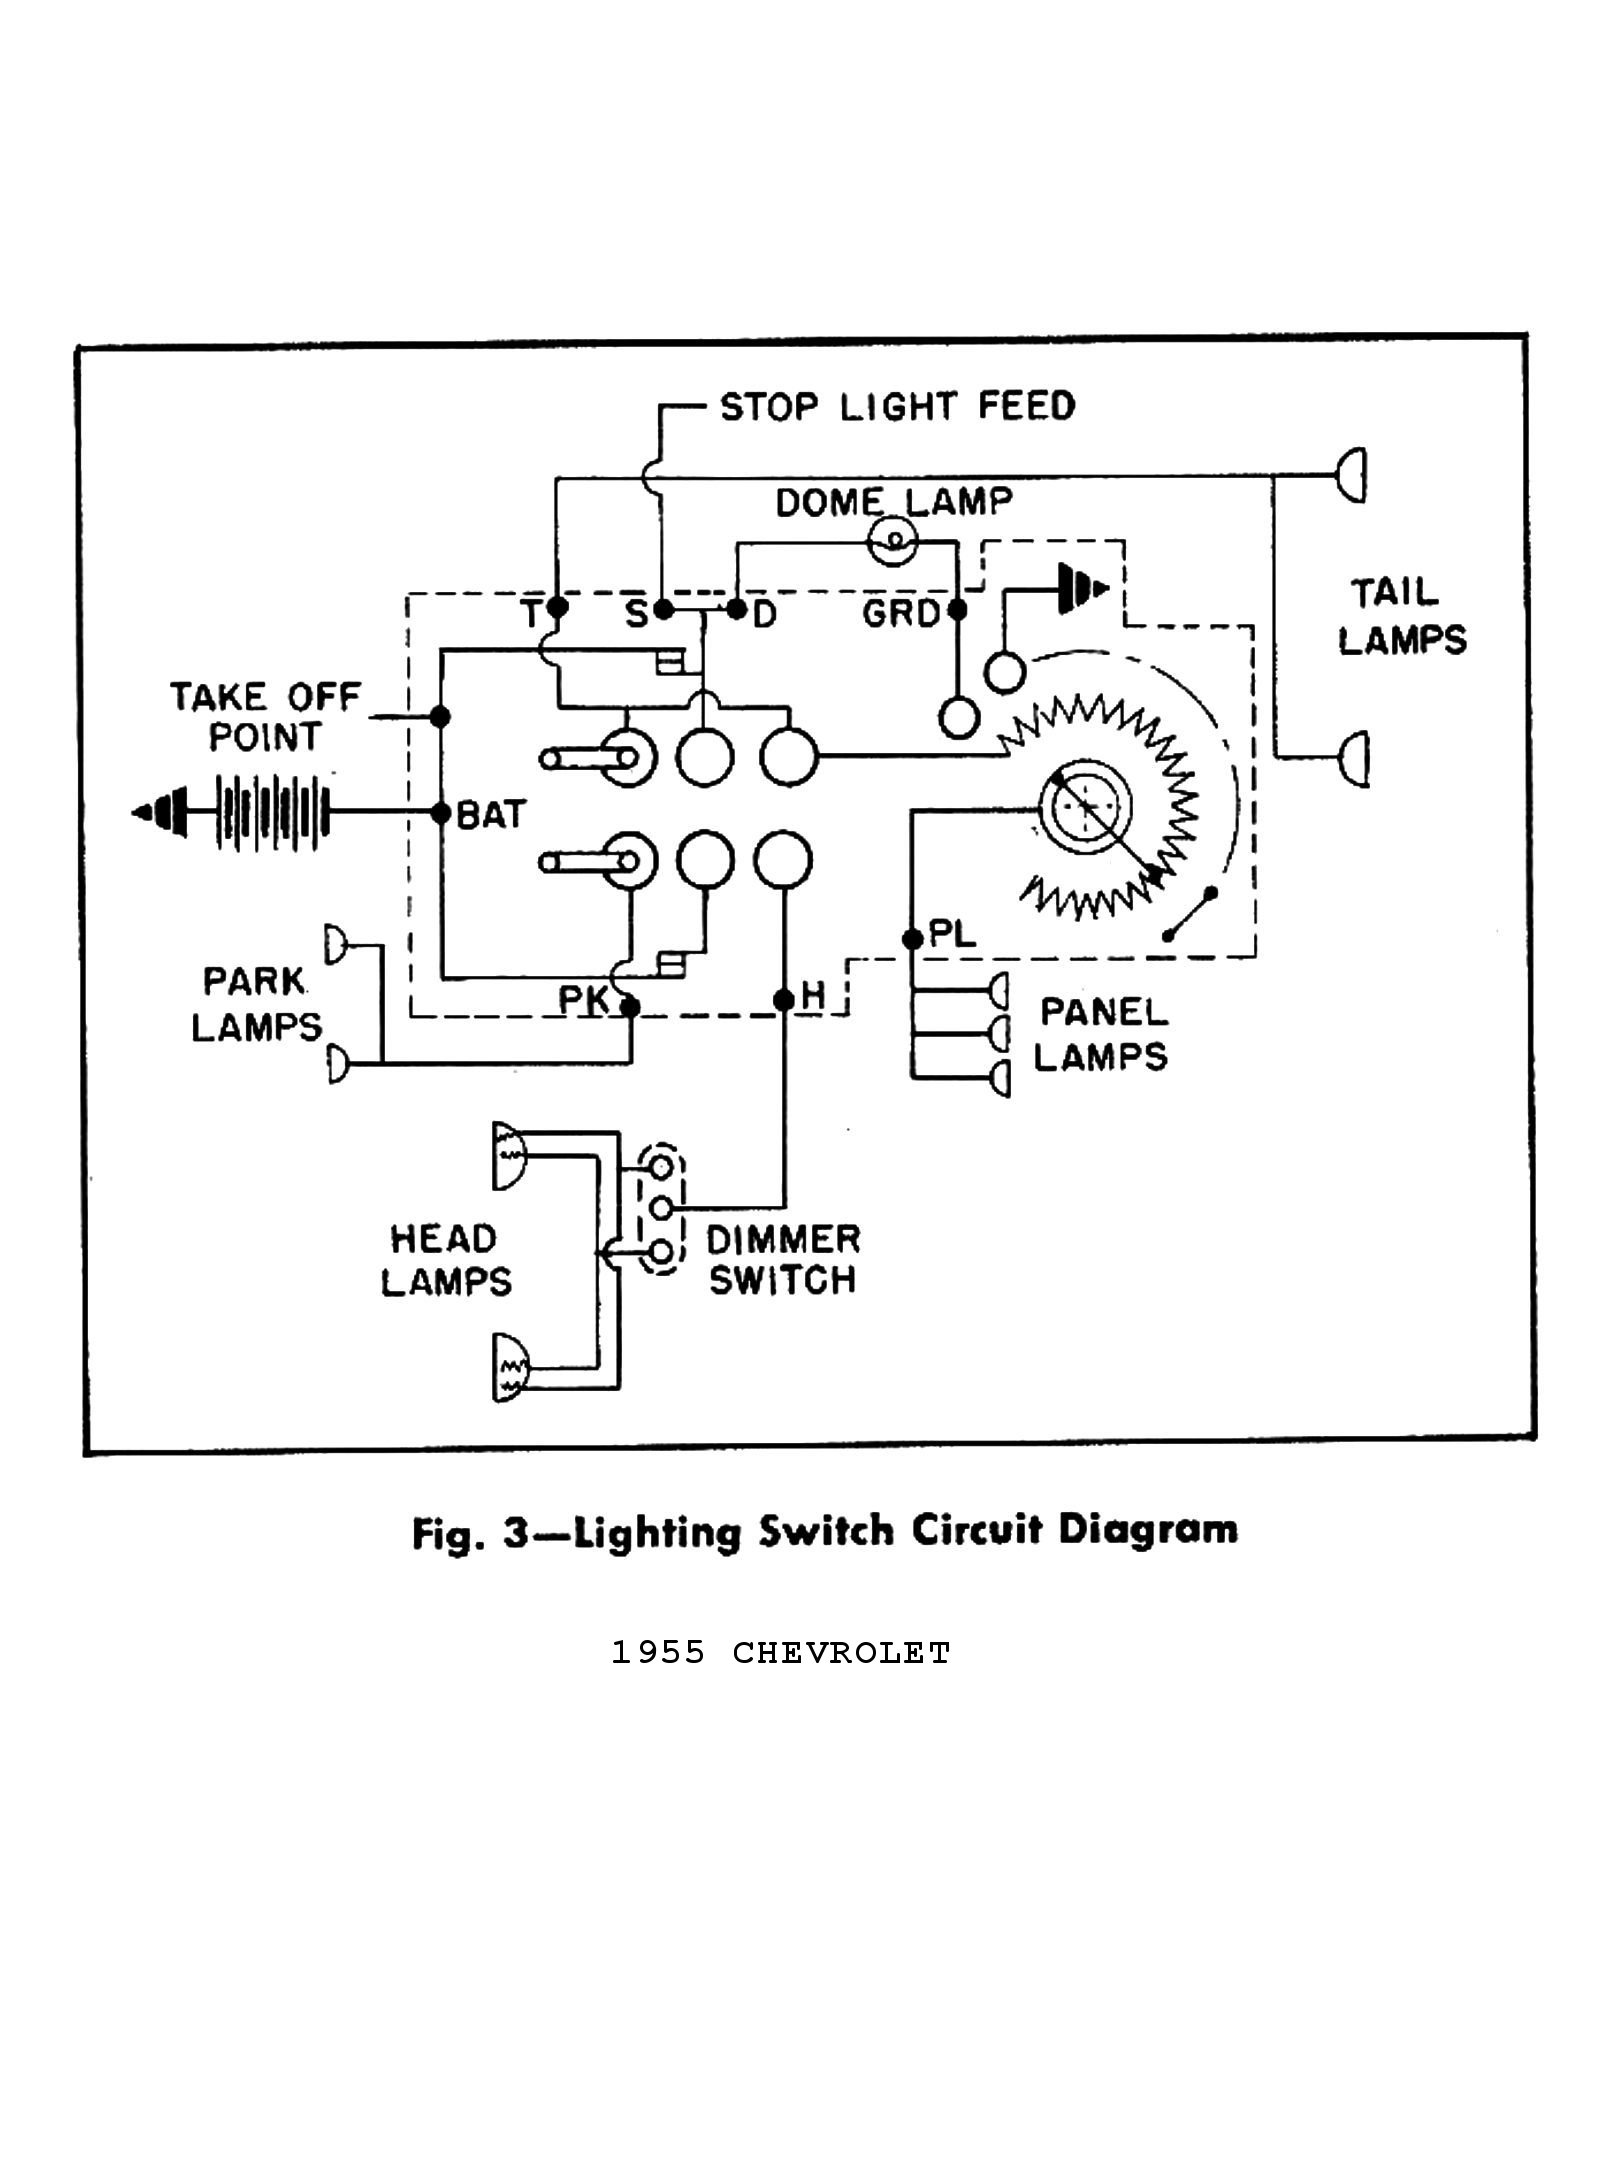 1955 Truck Wiring Diagrams · 1955 Passenger Car Wiring 2 · 1955 Lighting  Switch Circuit